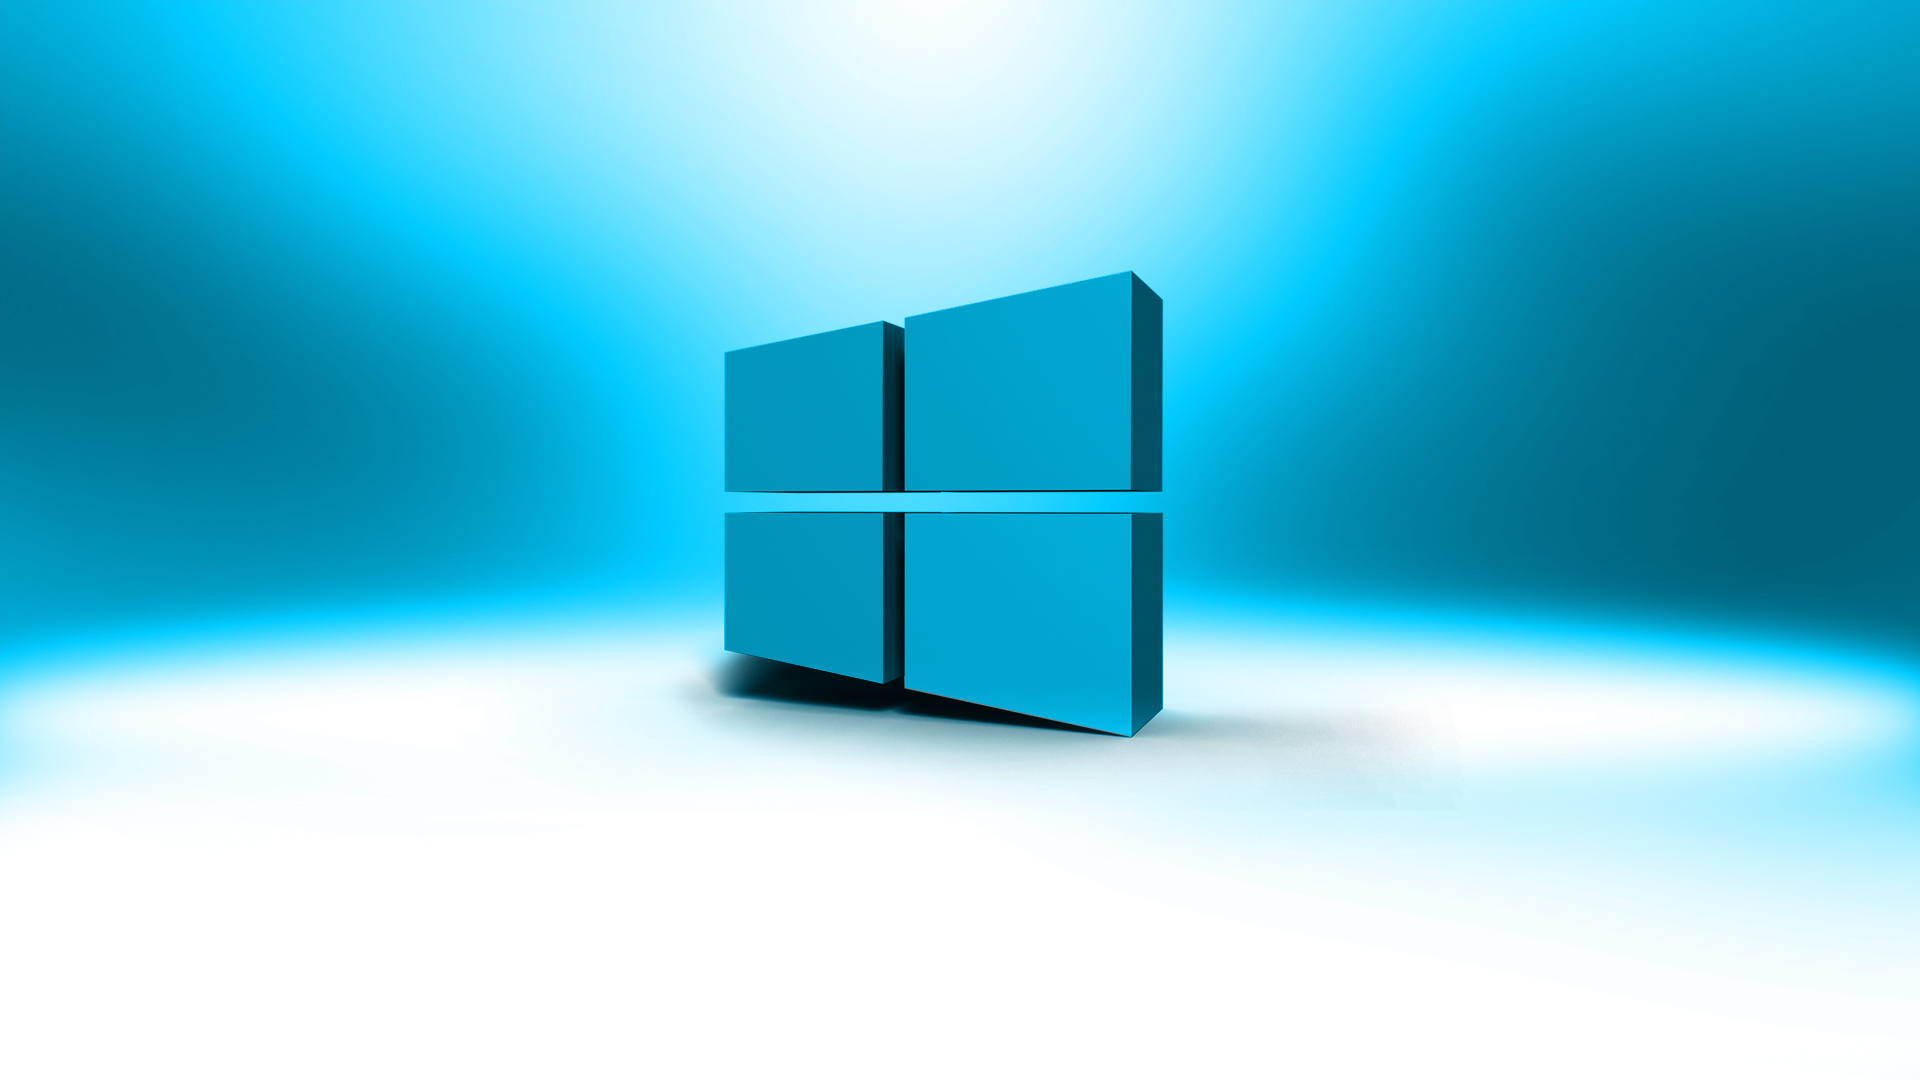 Microsoft Windows 3d Wallpaper